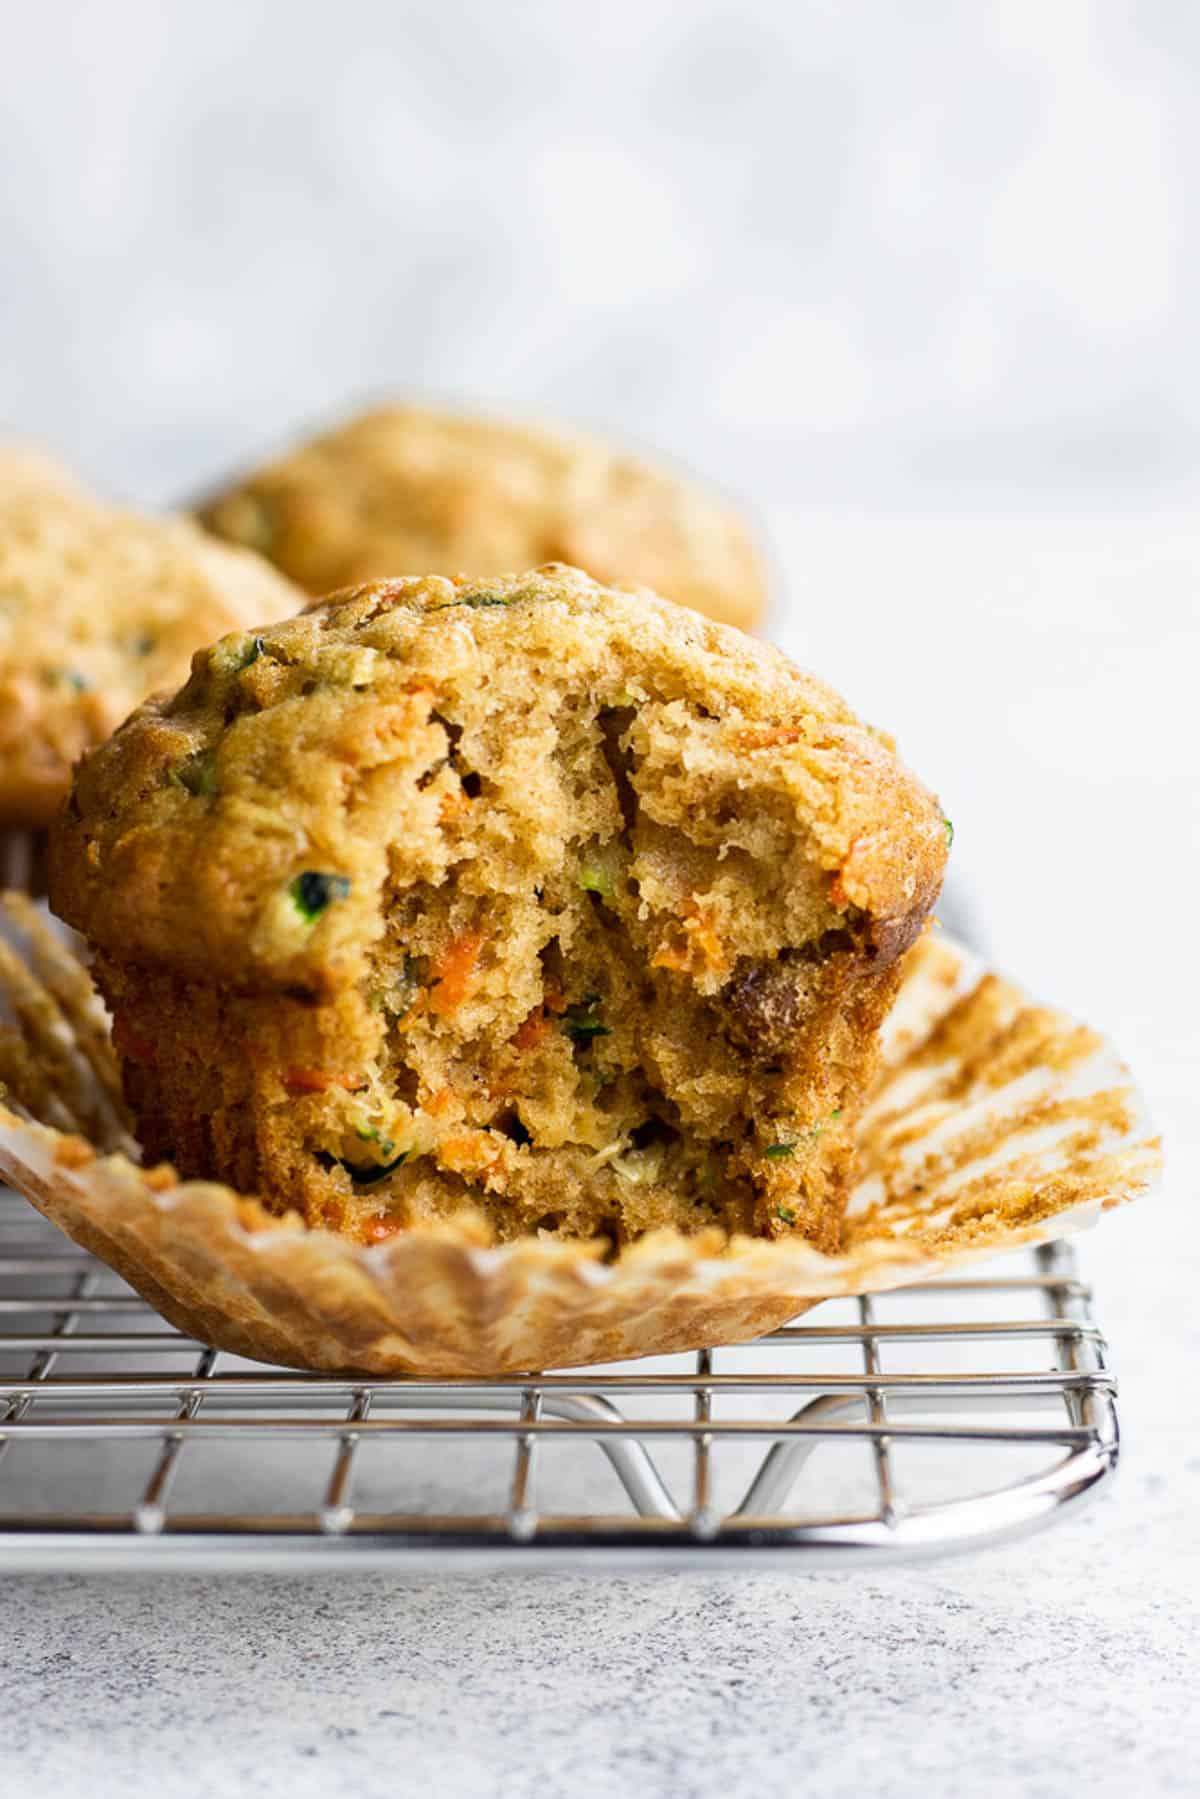 A bite shot of carrot zucchini muffin on a wire rack.